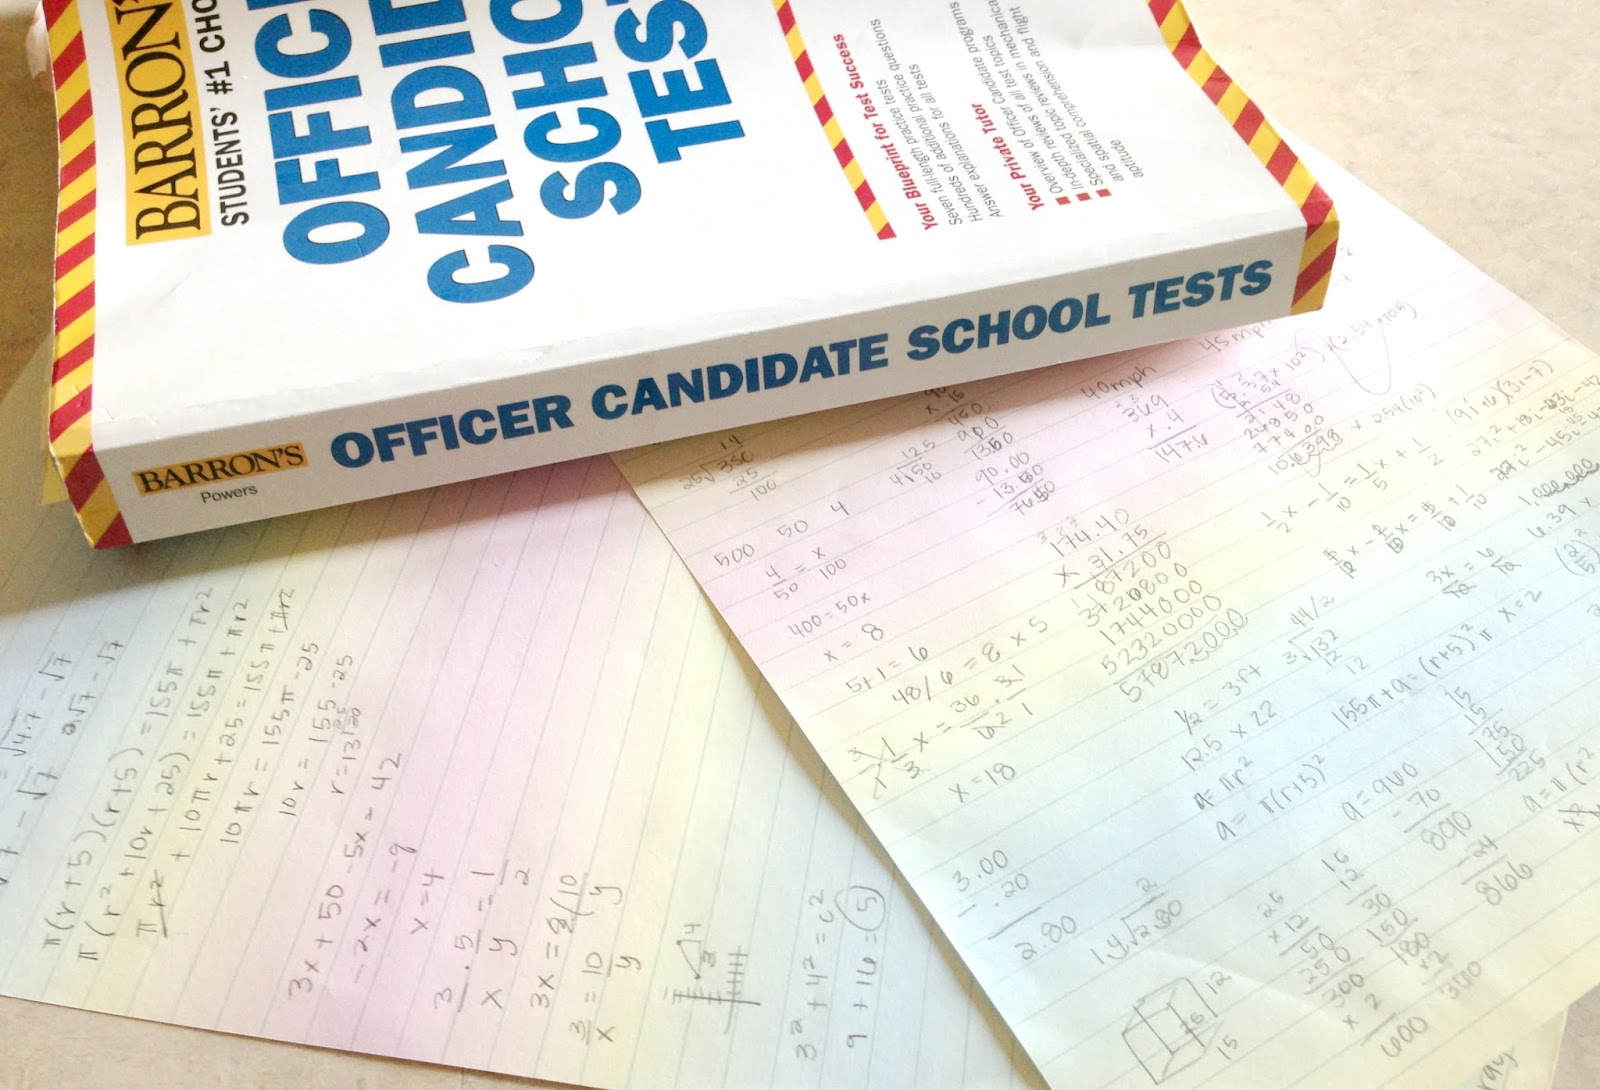 Officer AFOQT Test, Studying for the AFOQT, Taking the AFOQT to Commission as an Officer